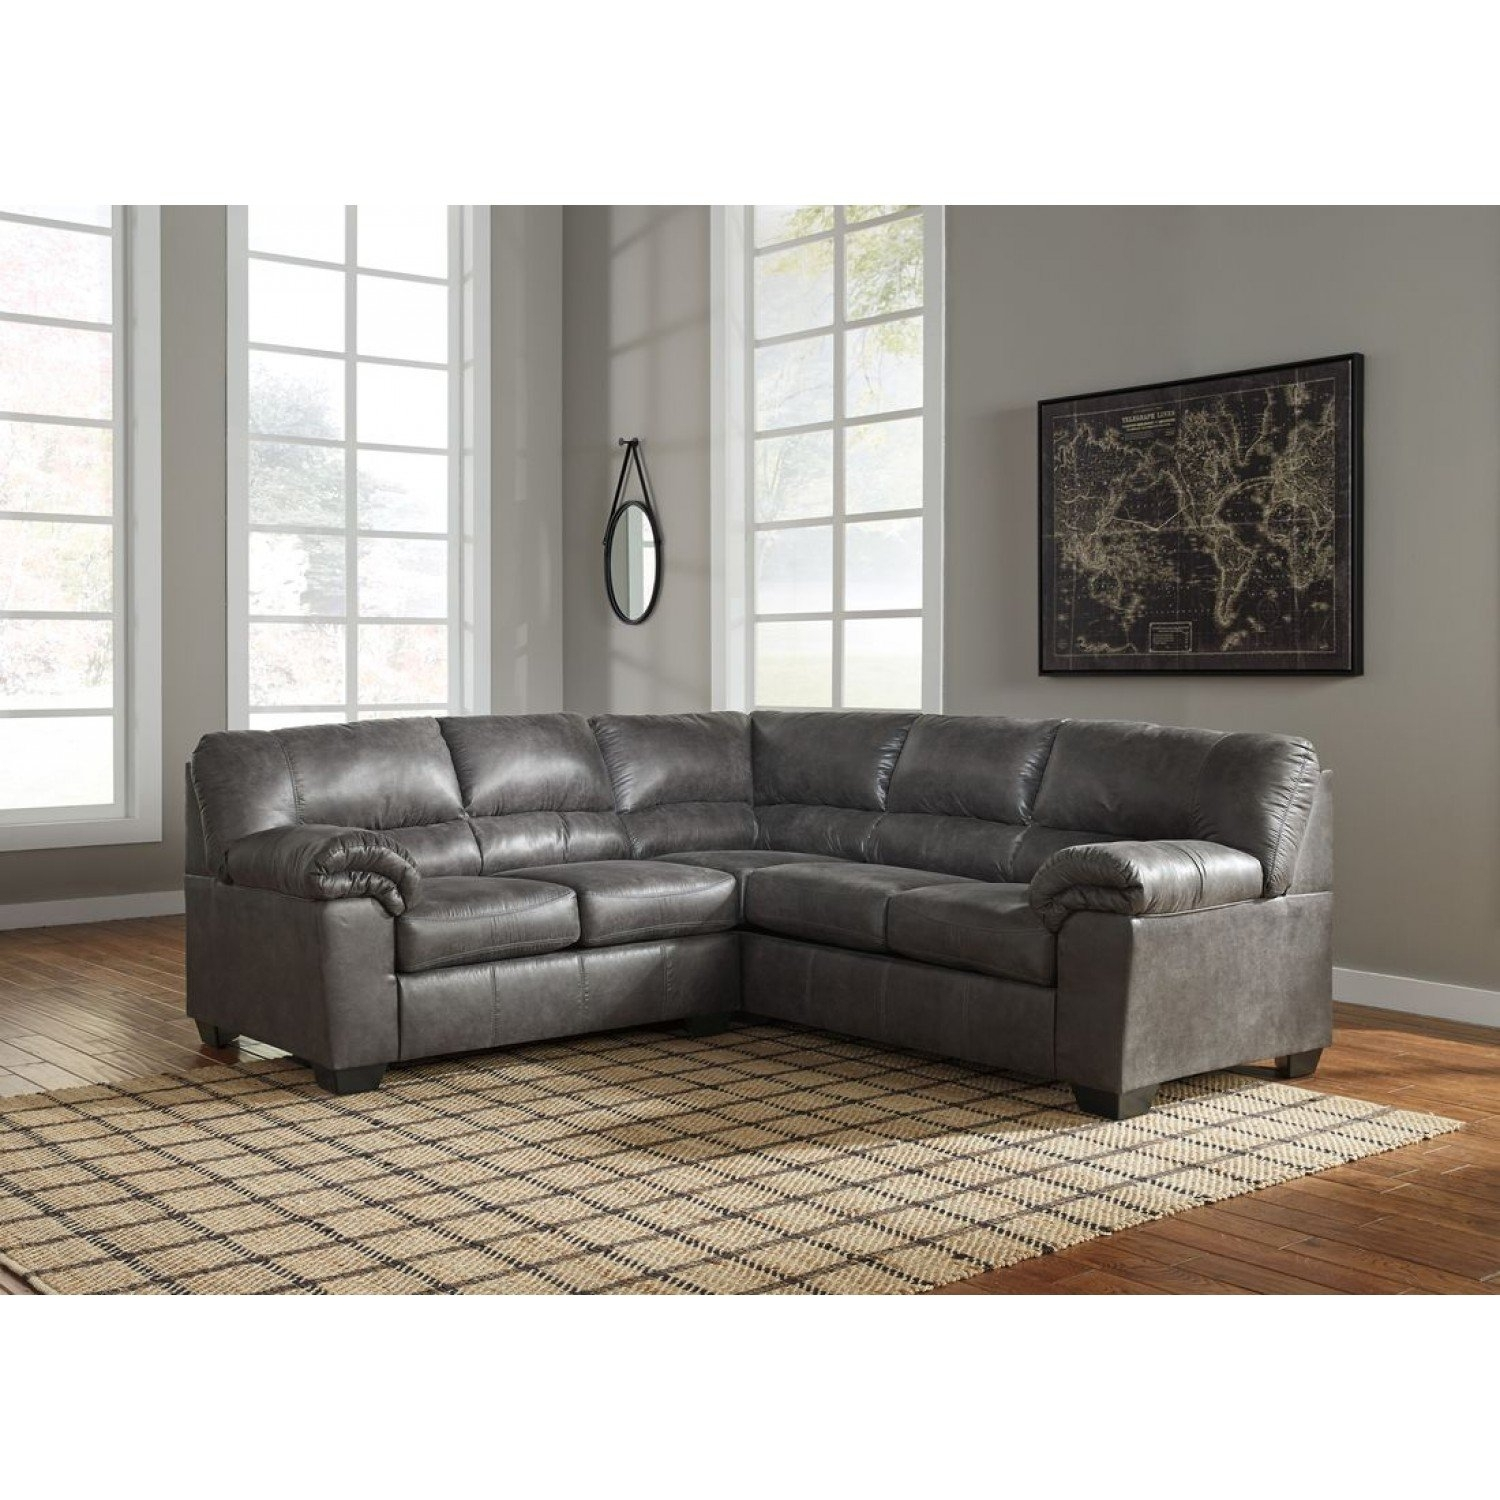 Glamor 25 Living Room With Leather Sectional Rustic Intended For Glamour Ii 3 Piece Sectionals (Image 13 of 25)